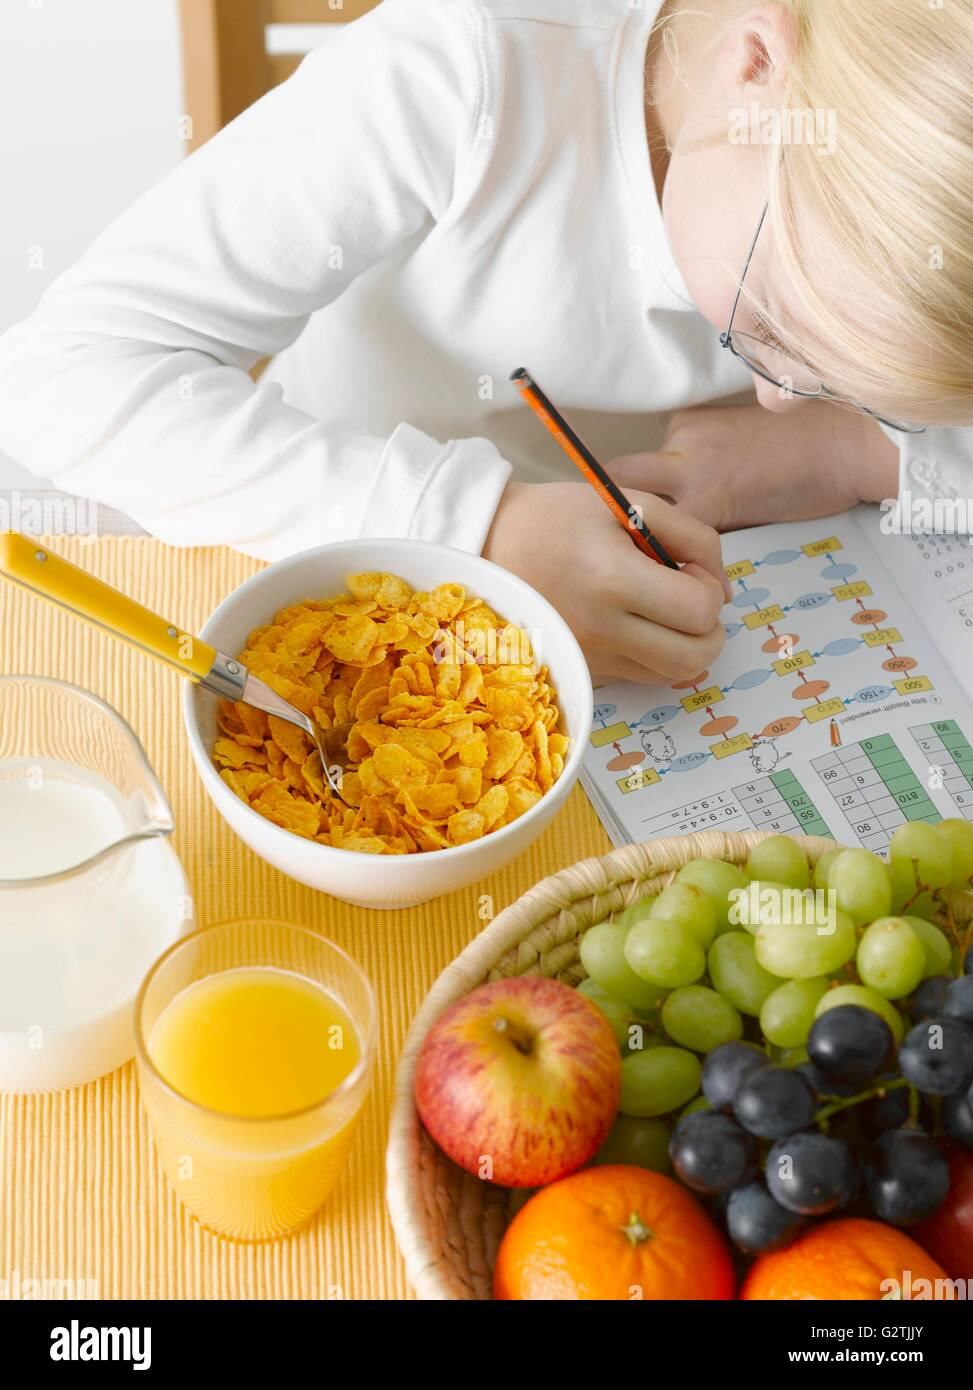 Girl with exercise book in front of healthy breakfast - Stock Image